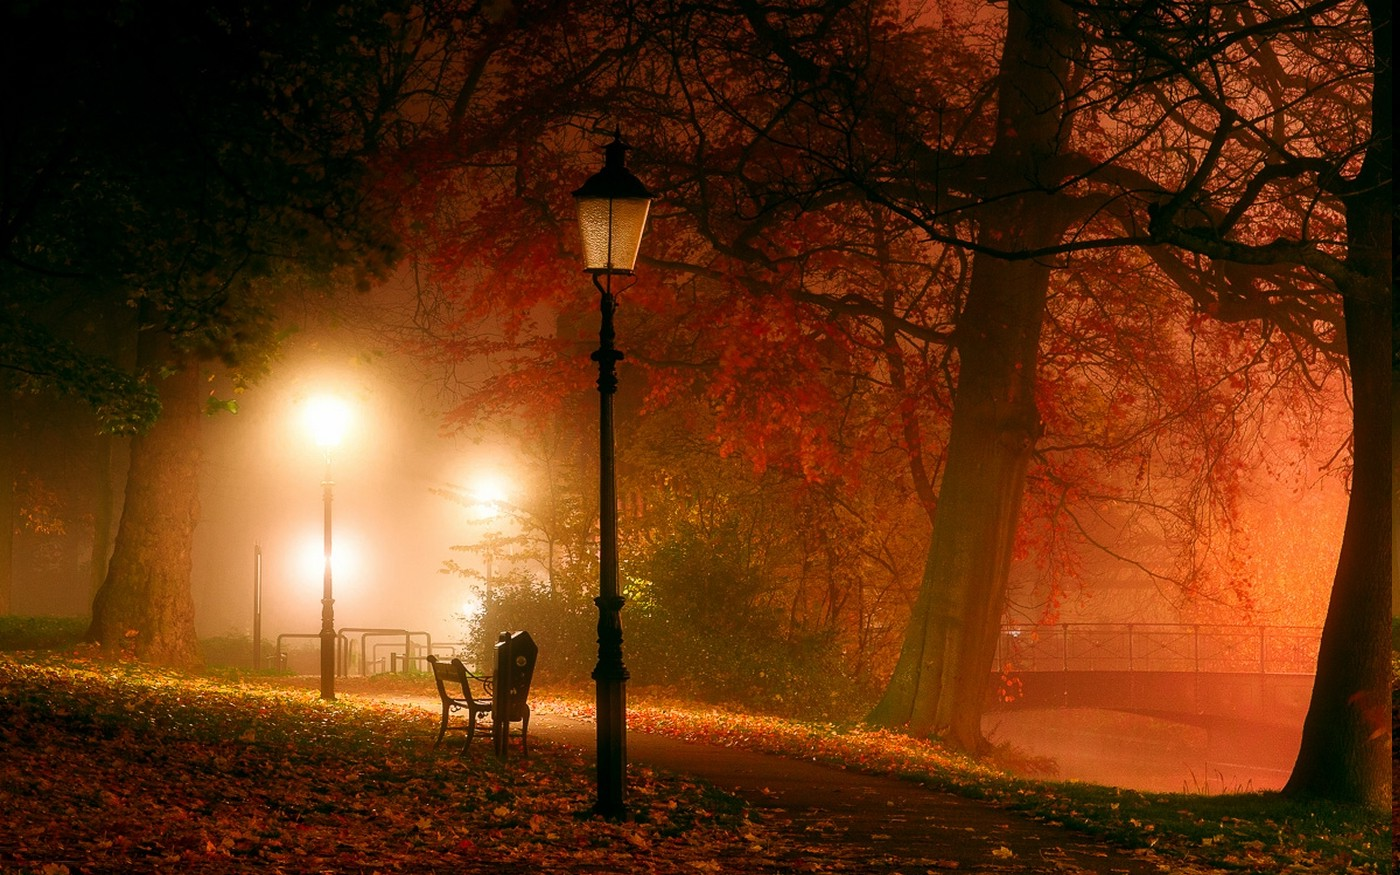 Fall Evening Wallpapers Fondos De Pantalla 1400x875 Px Atm 243 Sfera Banco Puente